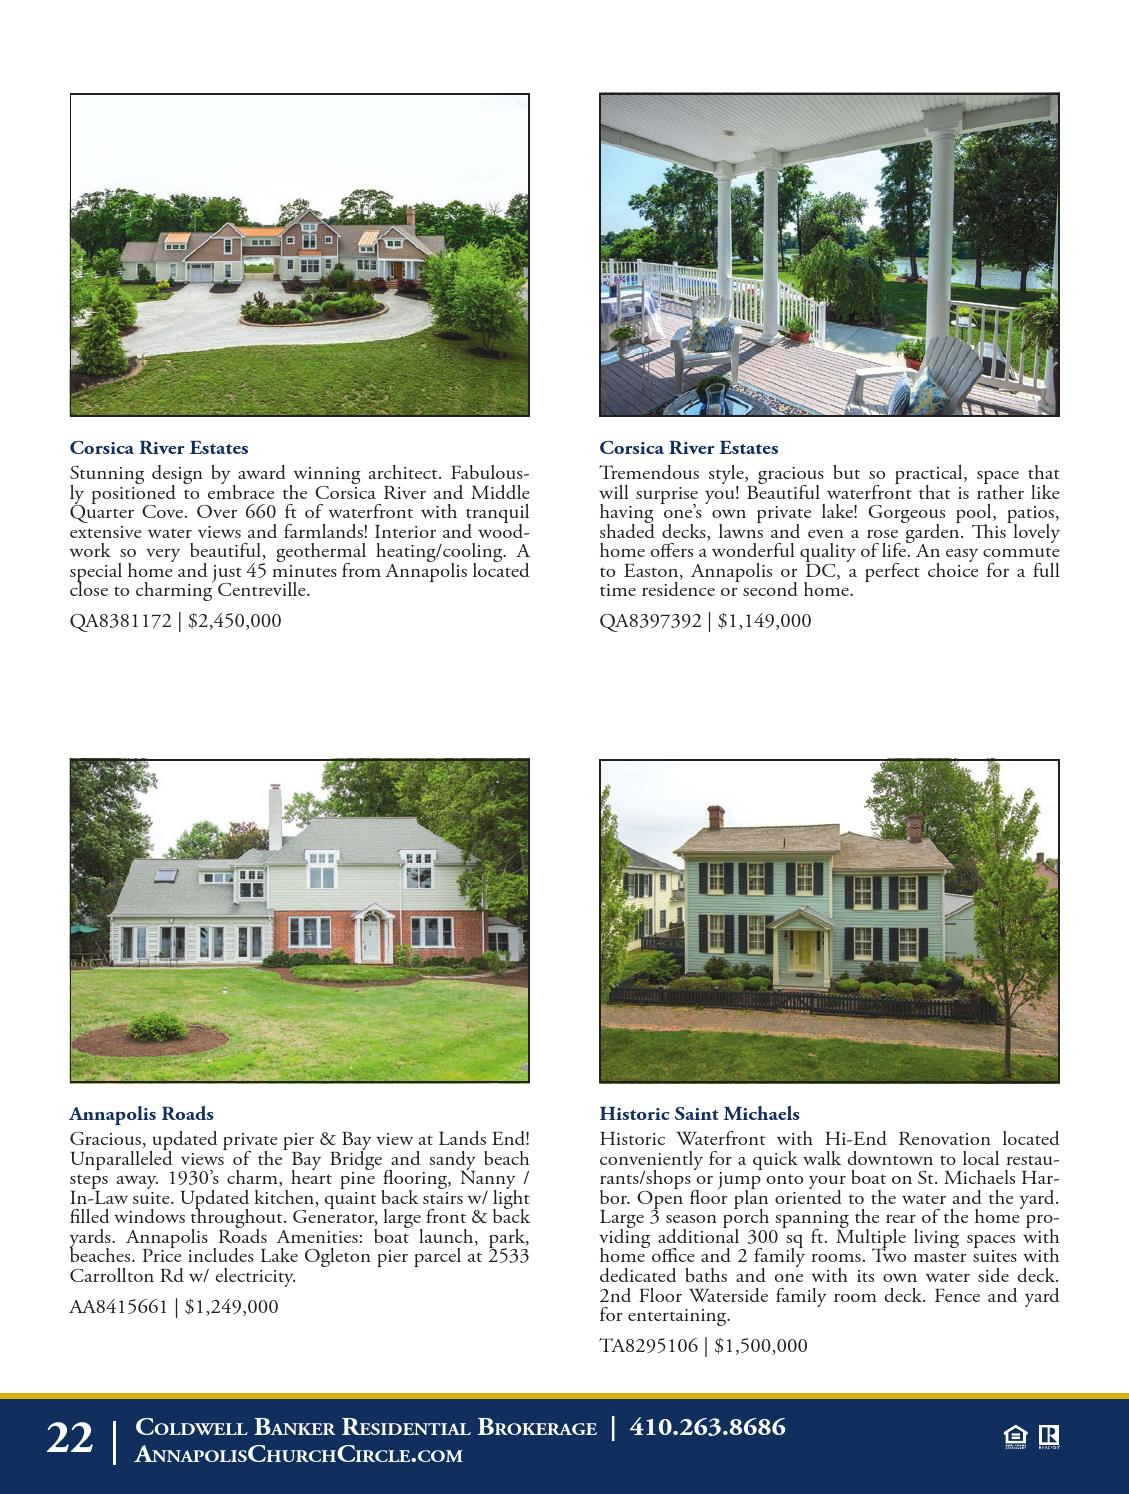 Cb Residential Brokerage Annapolis Distinctive Properties